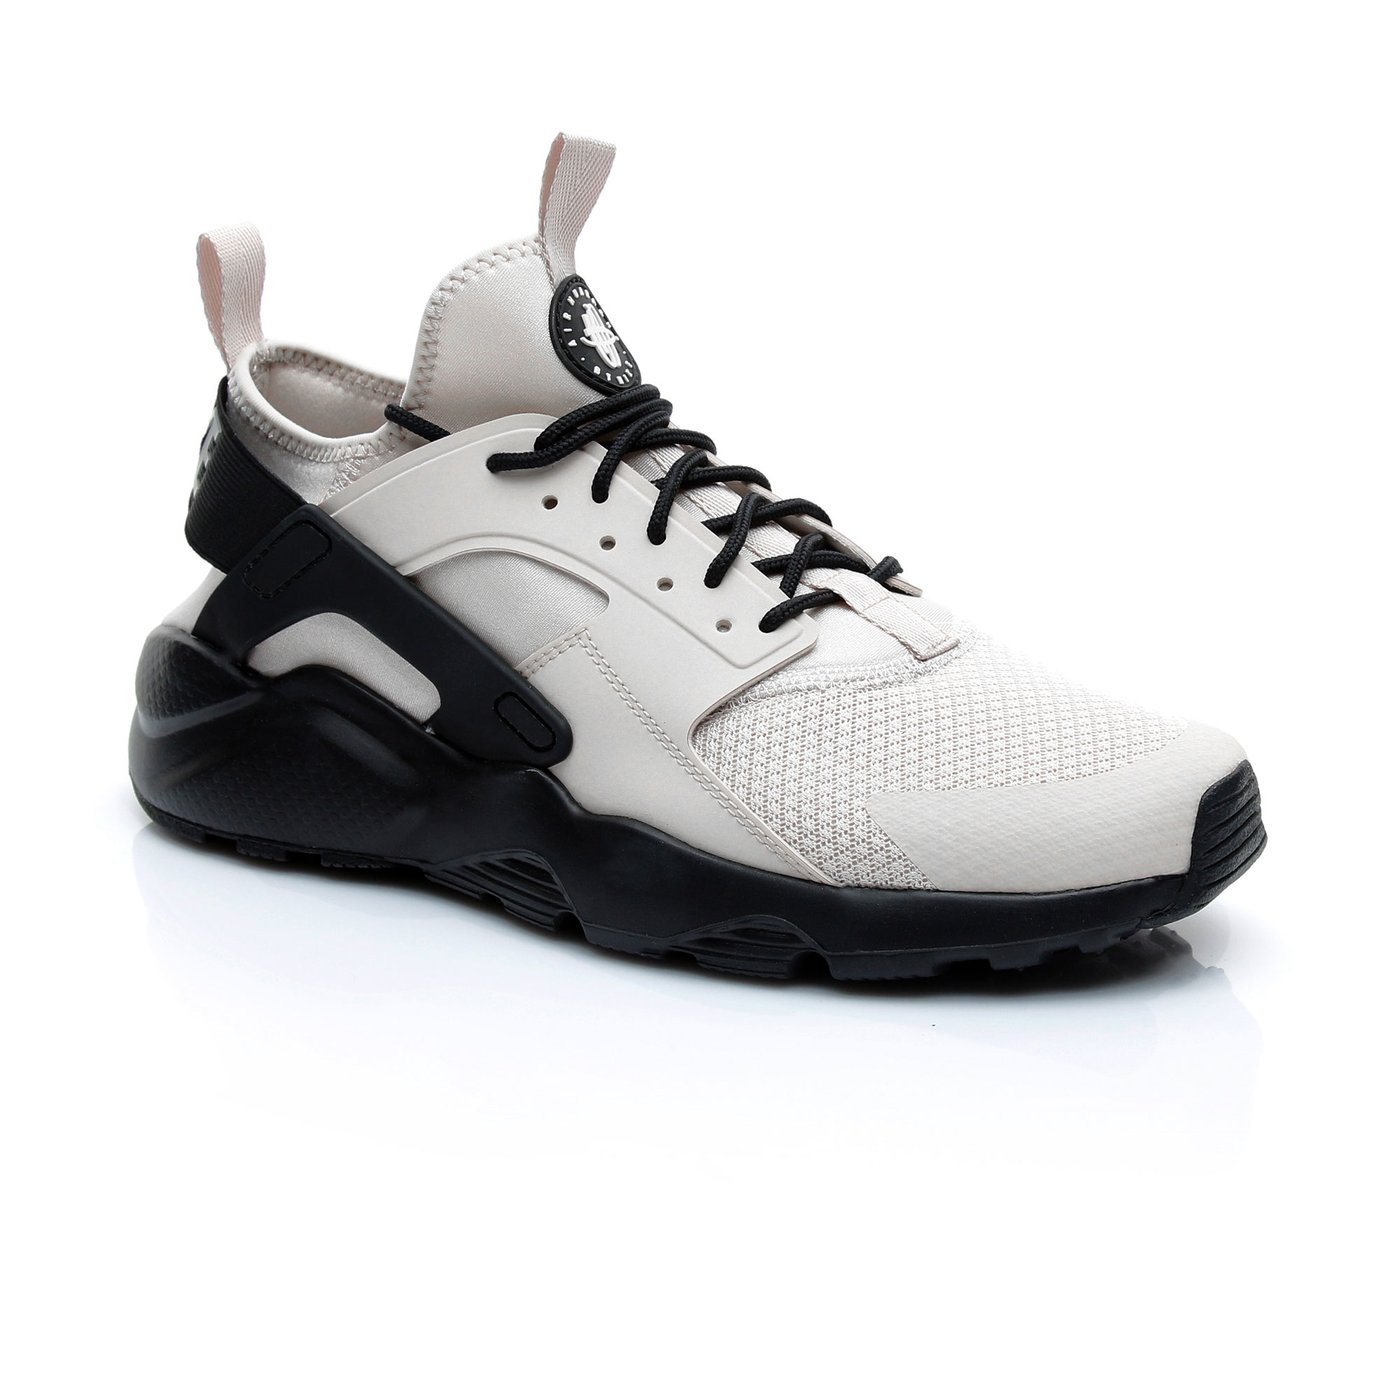 Nike Air Huarache Run Ultra Erkek Bej Sneaker